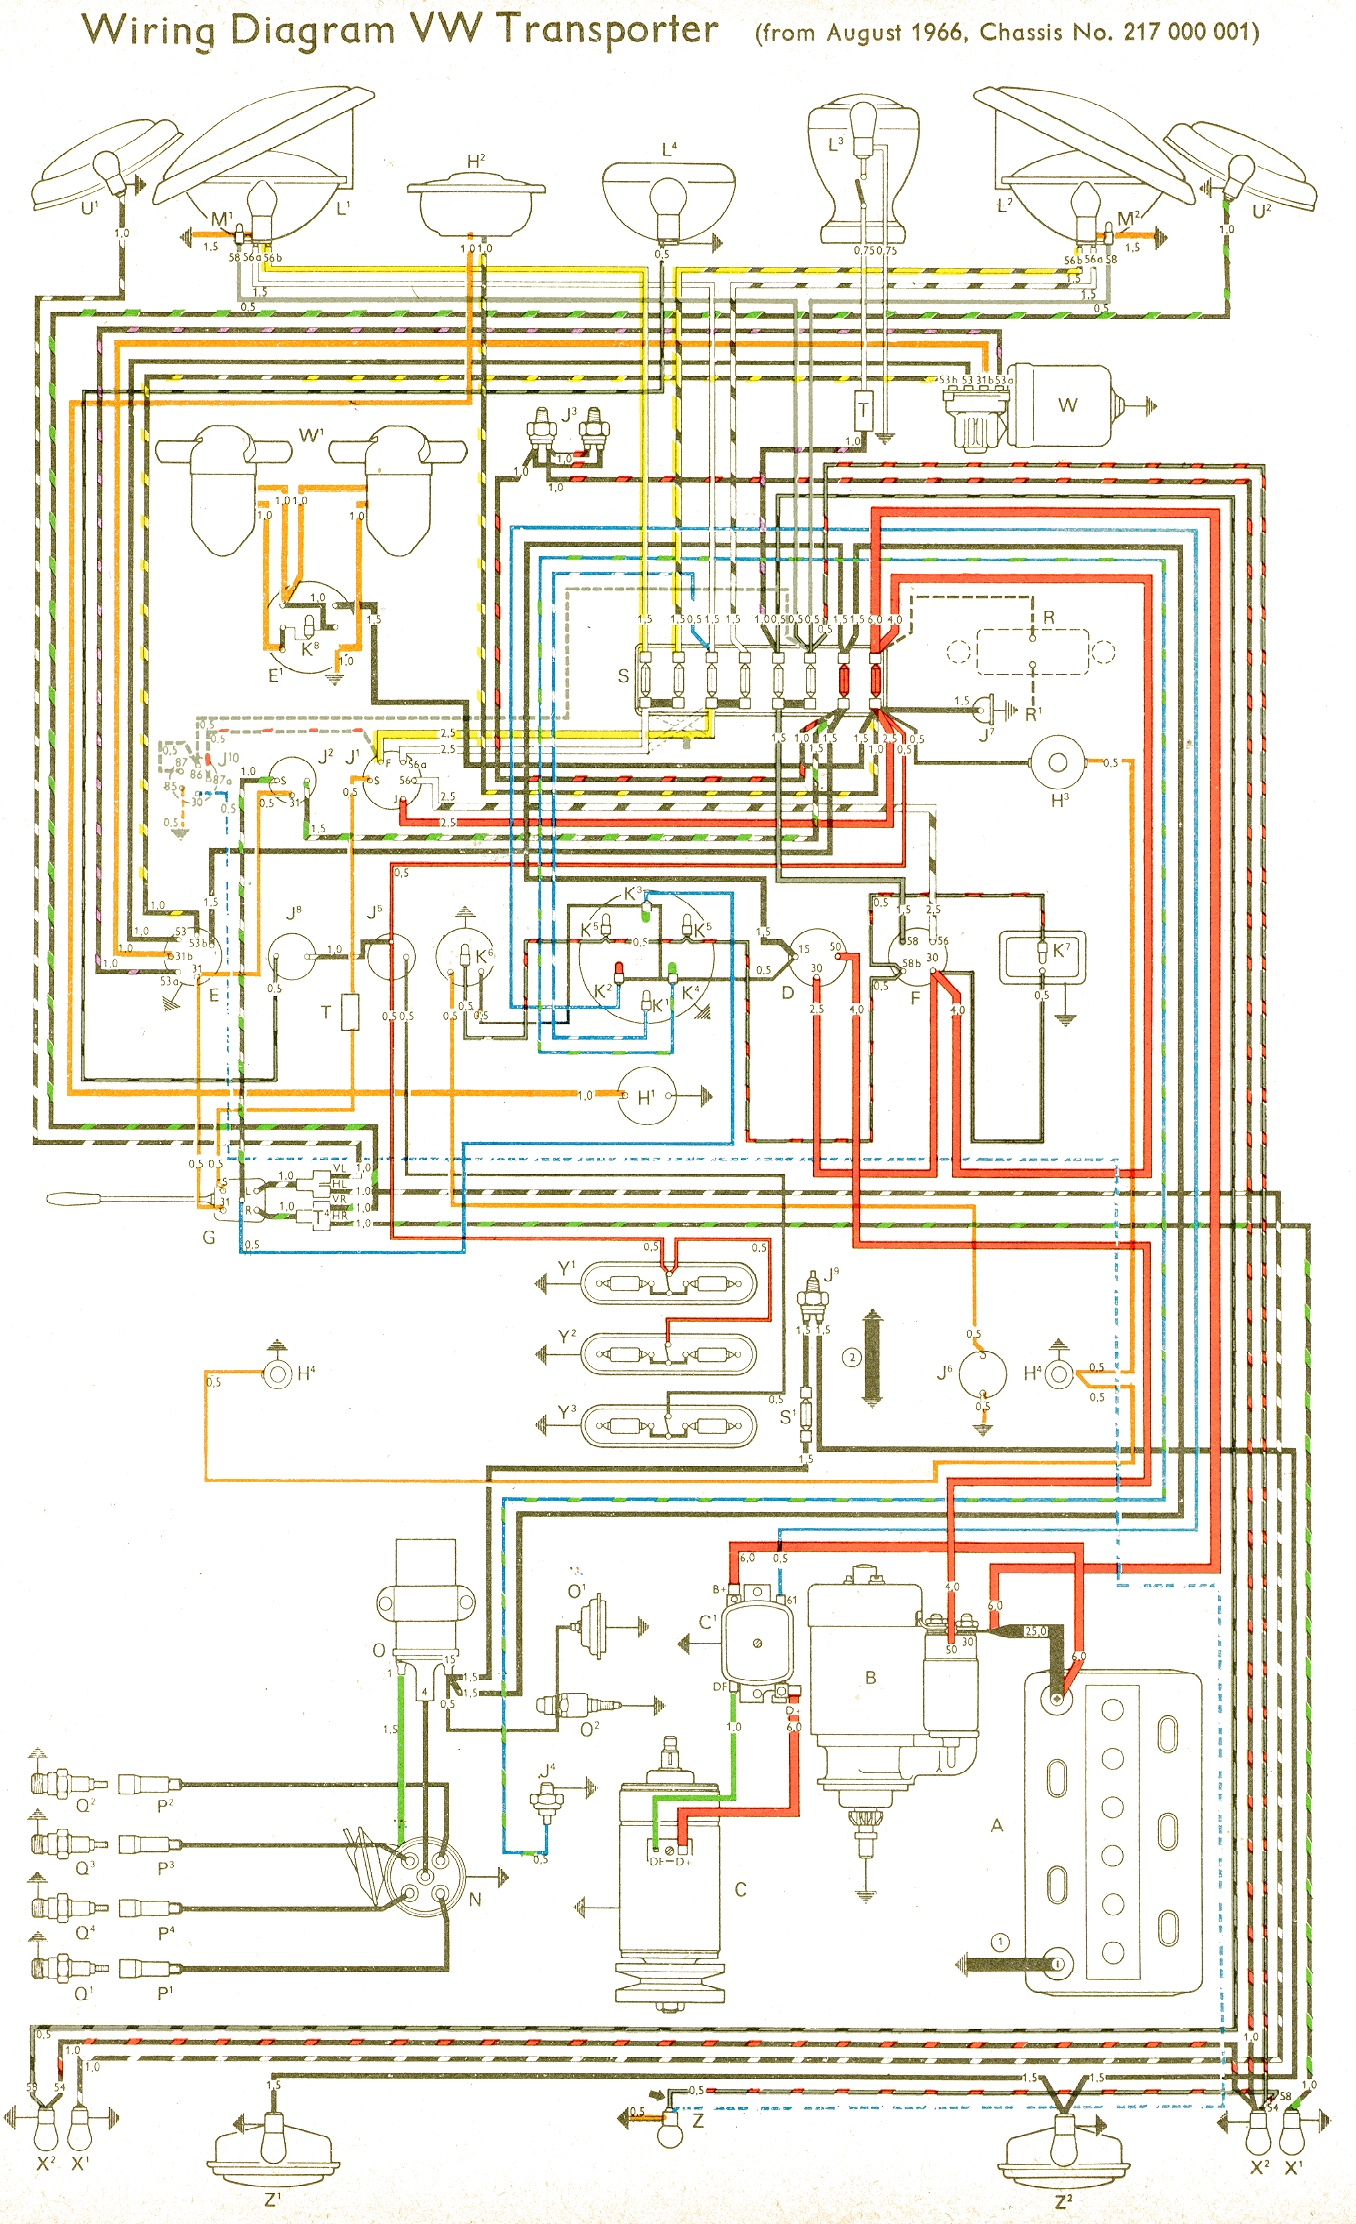 Chevy Monte Carlo Wiring Diagrams together with Showthread likewise Gm Headlight Switch Wiring Diagram 1970 in addition Cranks Ok But No Start Checklist For Fuel Injected Mustangs furthermore Vw T5 Headlight Wiring Diagram. on 1970 chevy headlight dimmer diagram